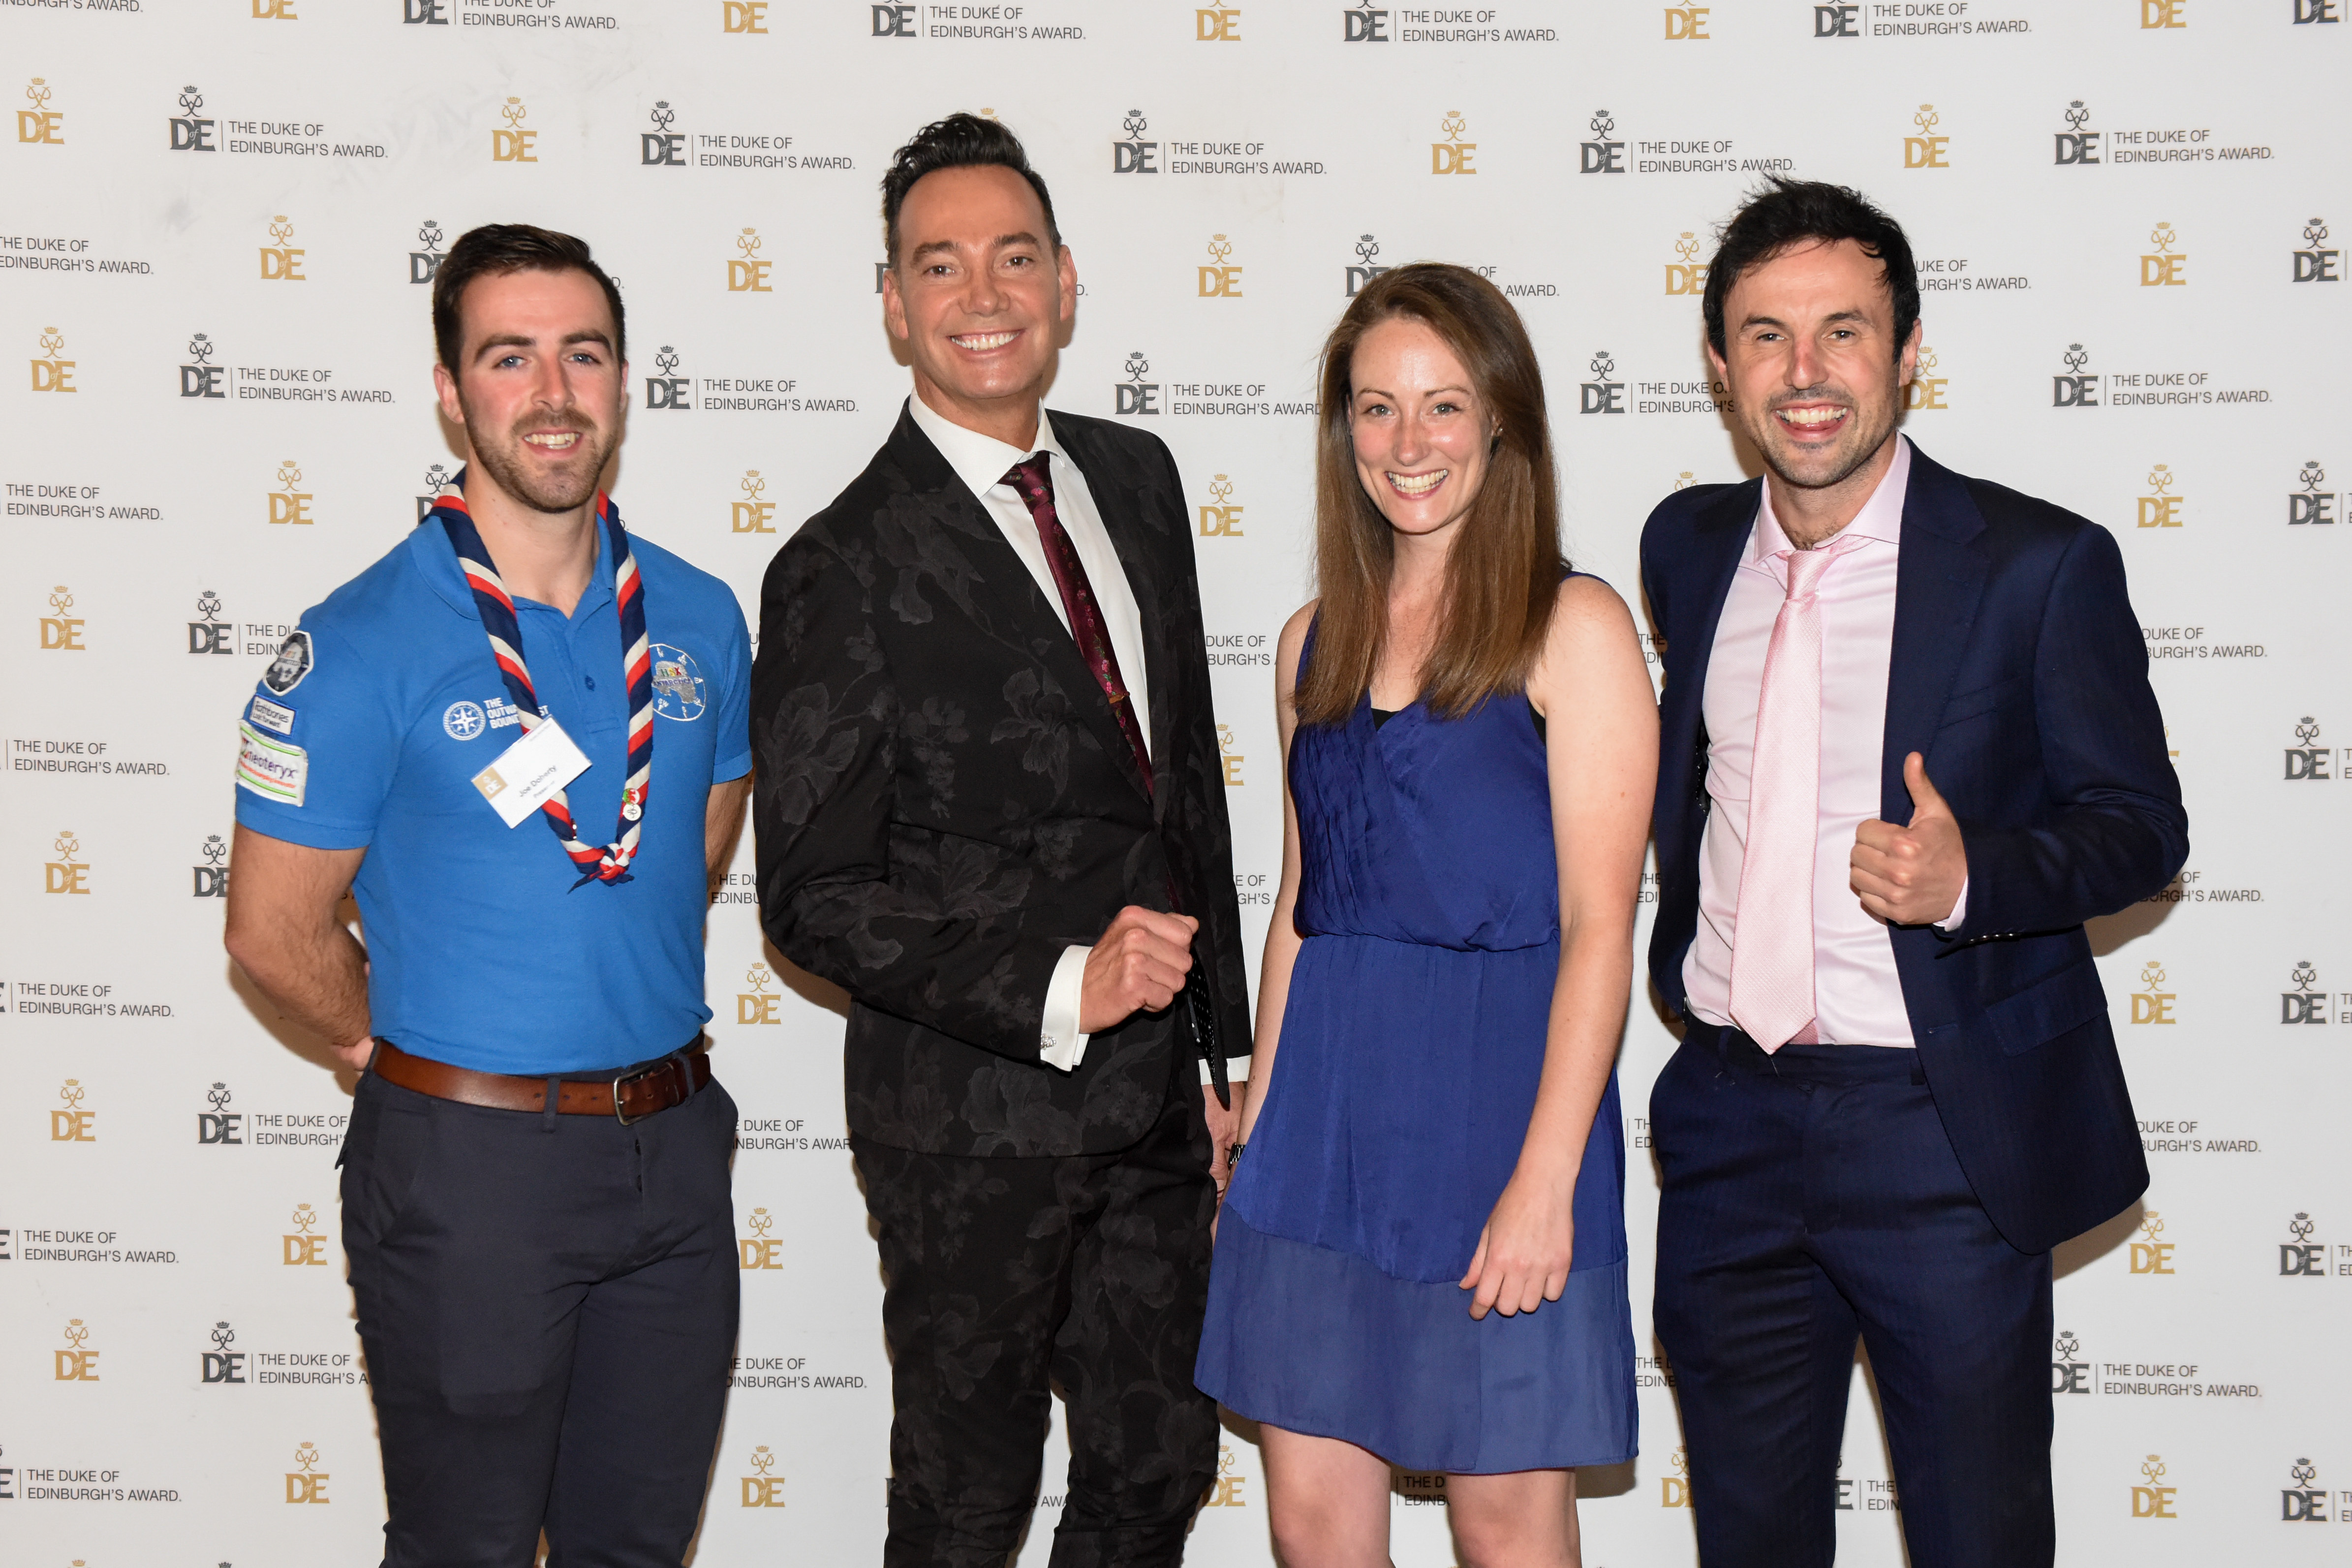 Group photograph at Gold Award Presentation of three male and one female presenters